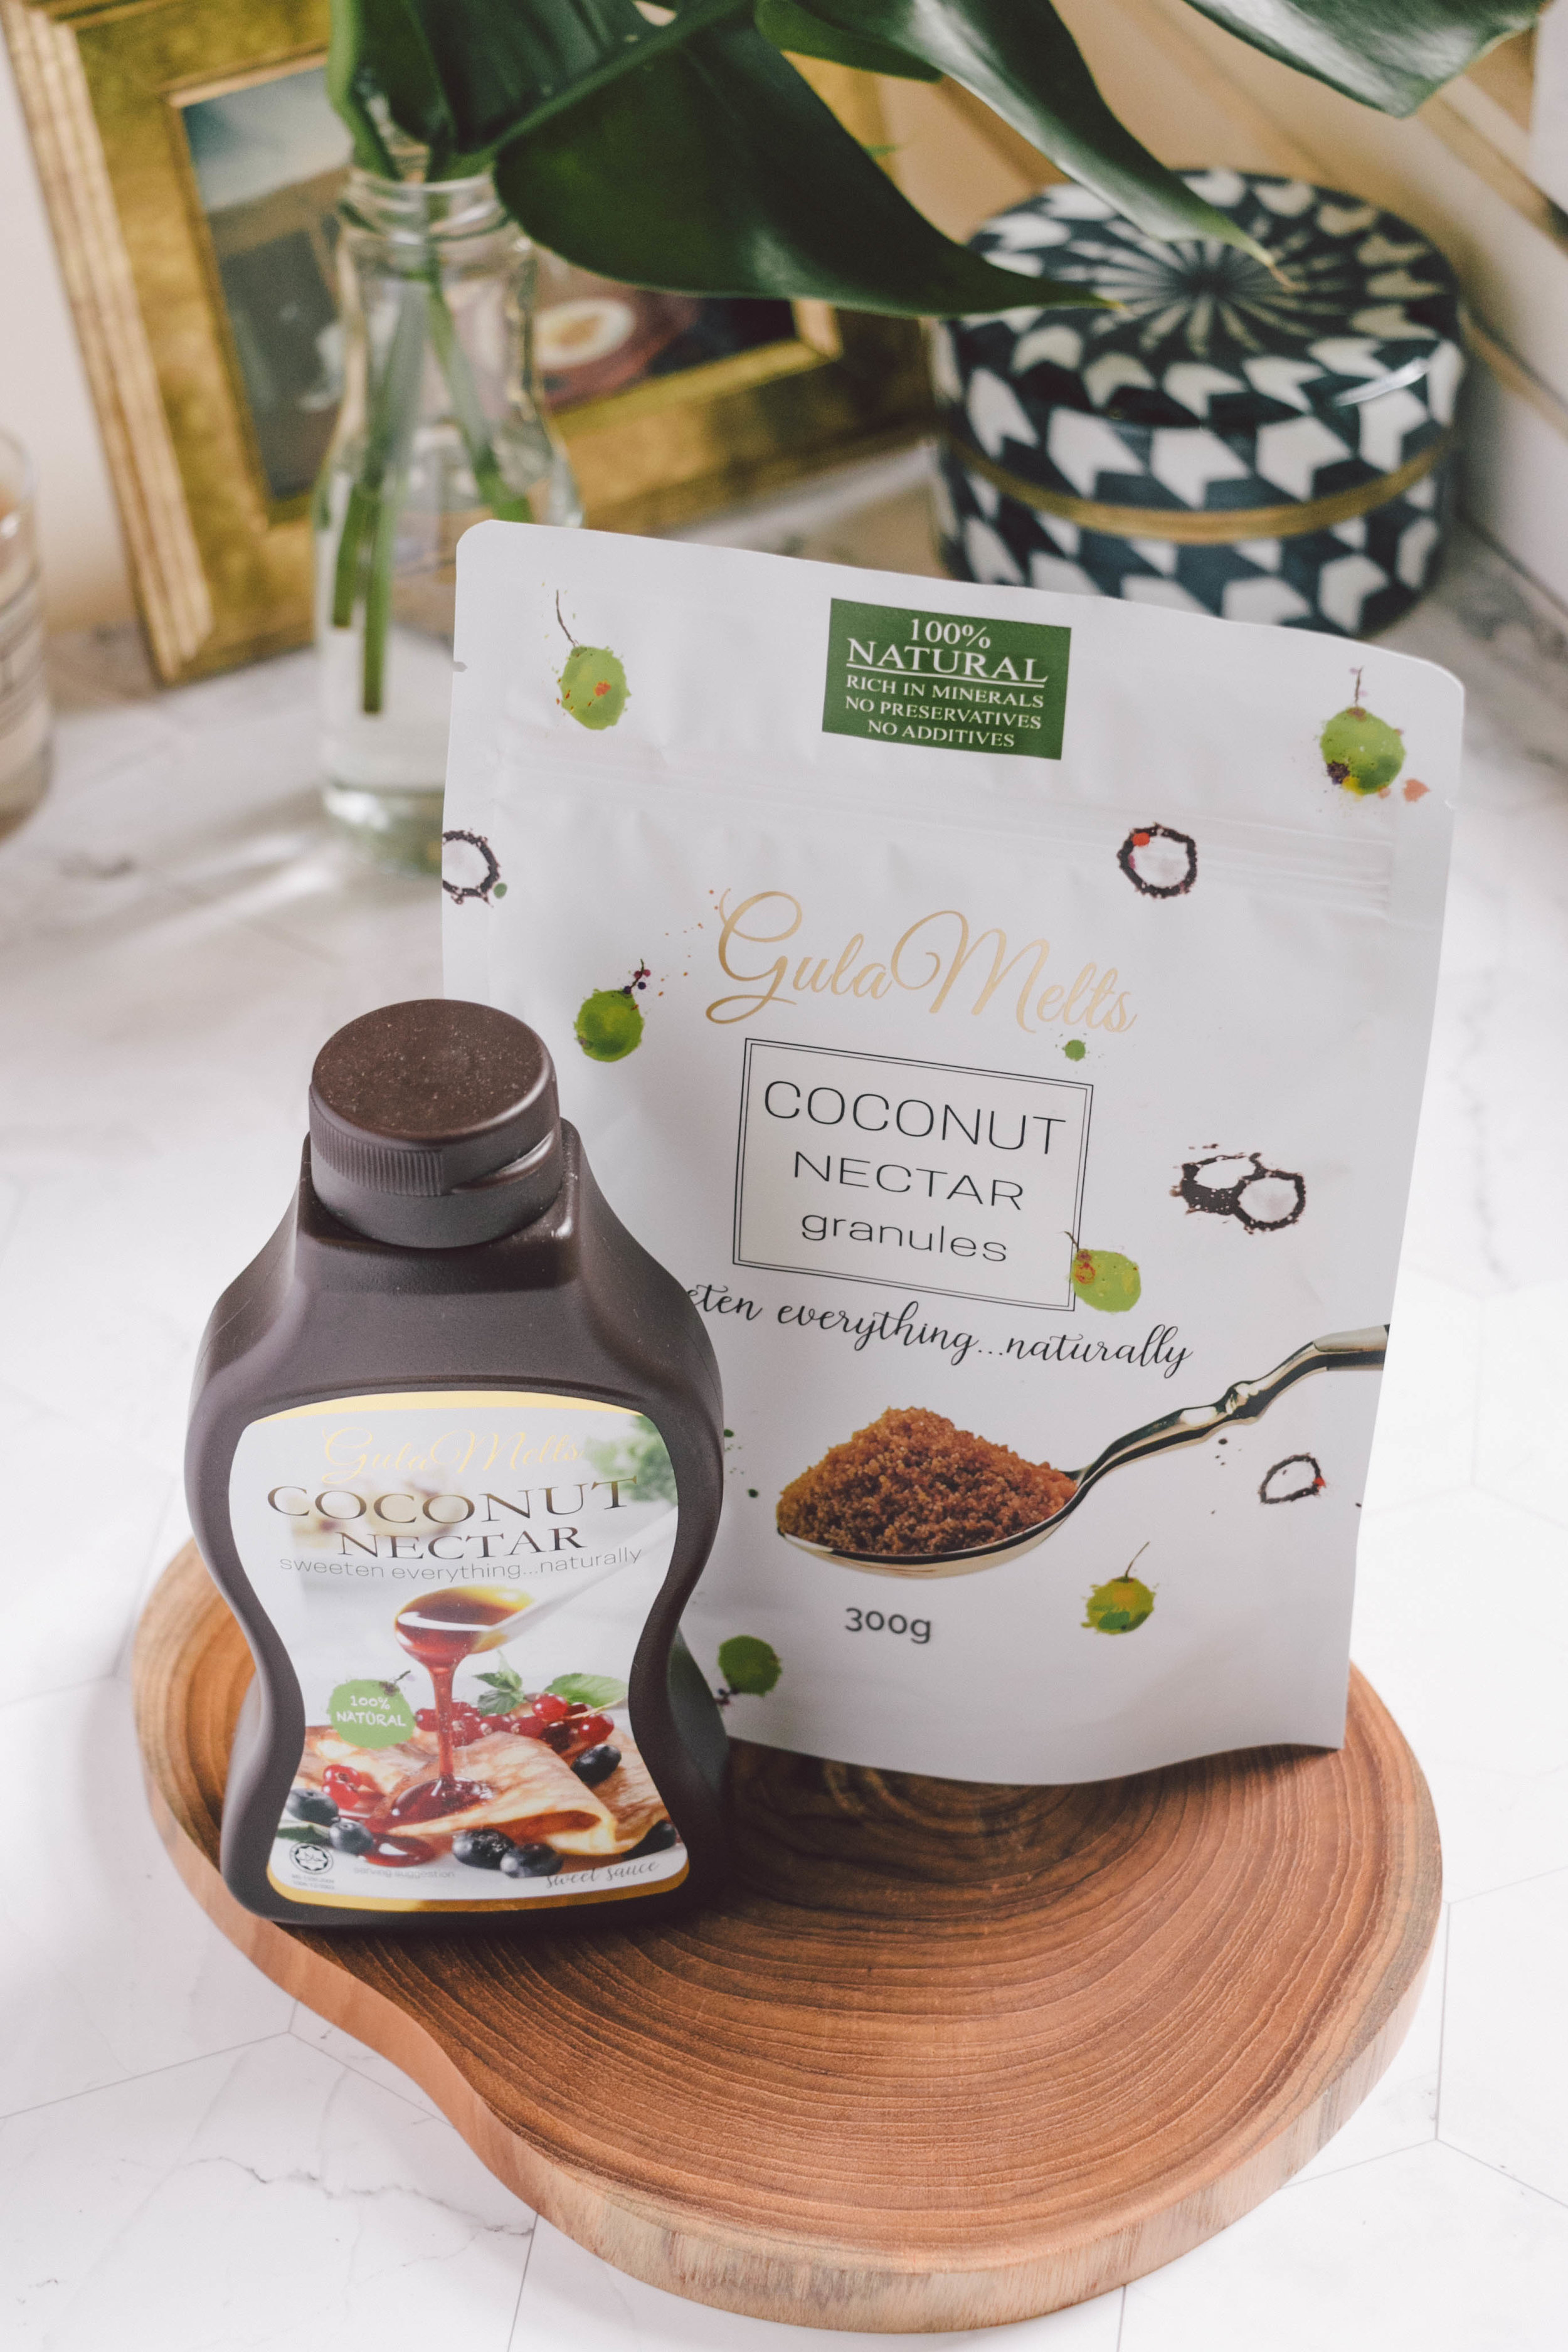 Coconut Nectar & Coconut Sugar - Gula Melts is a local brand that sells coconut nectar cultivated locally in Borneo. Their products are 100% natural and don't contain any preservatives and additives. Coconut nectar has a fairly low GI of 35 (compared to honey which is 55, and table sugar which is 65), meaning it won't spike your blood glucose and insulin levels as quickly.I love that Gula Melts has coconut nectar in both a granulated sugar and liquid form, so I can choose between the two depending on the dish I'm making. The nectar has a rich caramel flavour and which is perfect drizzled over porridge.